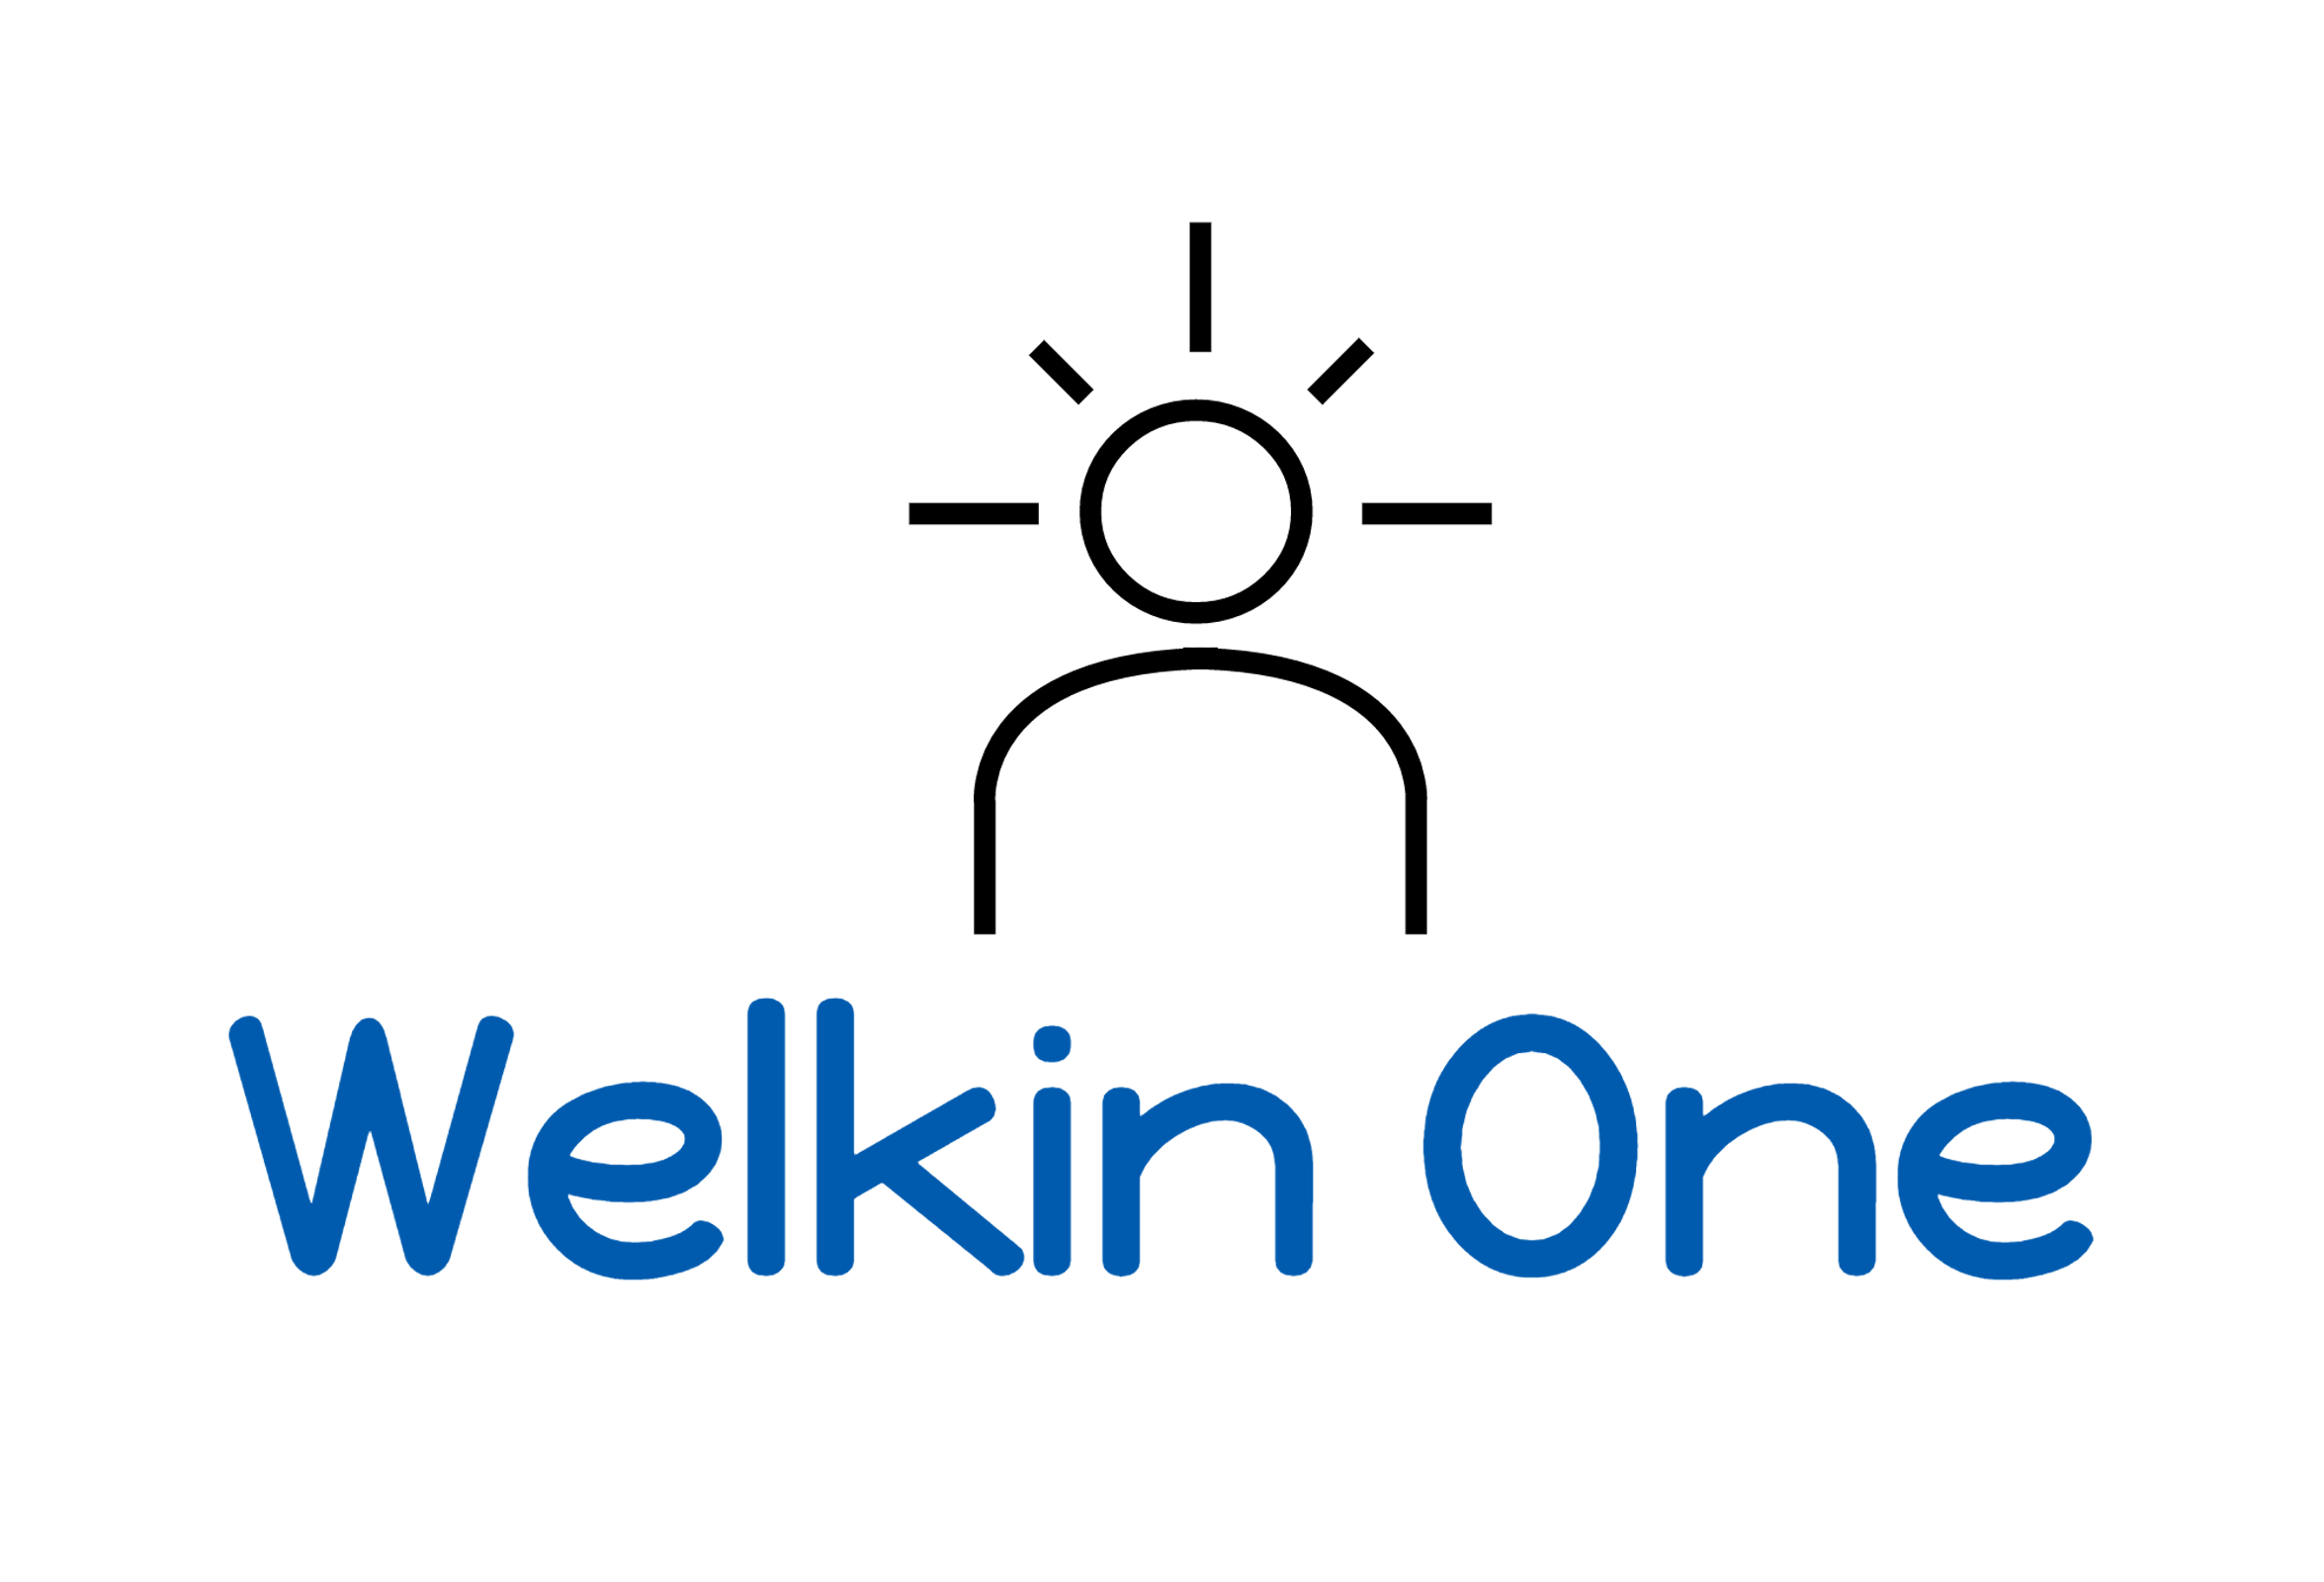 Enter the Welkin